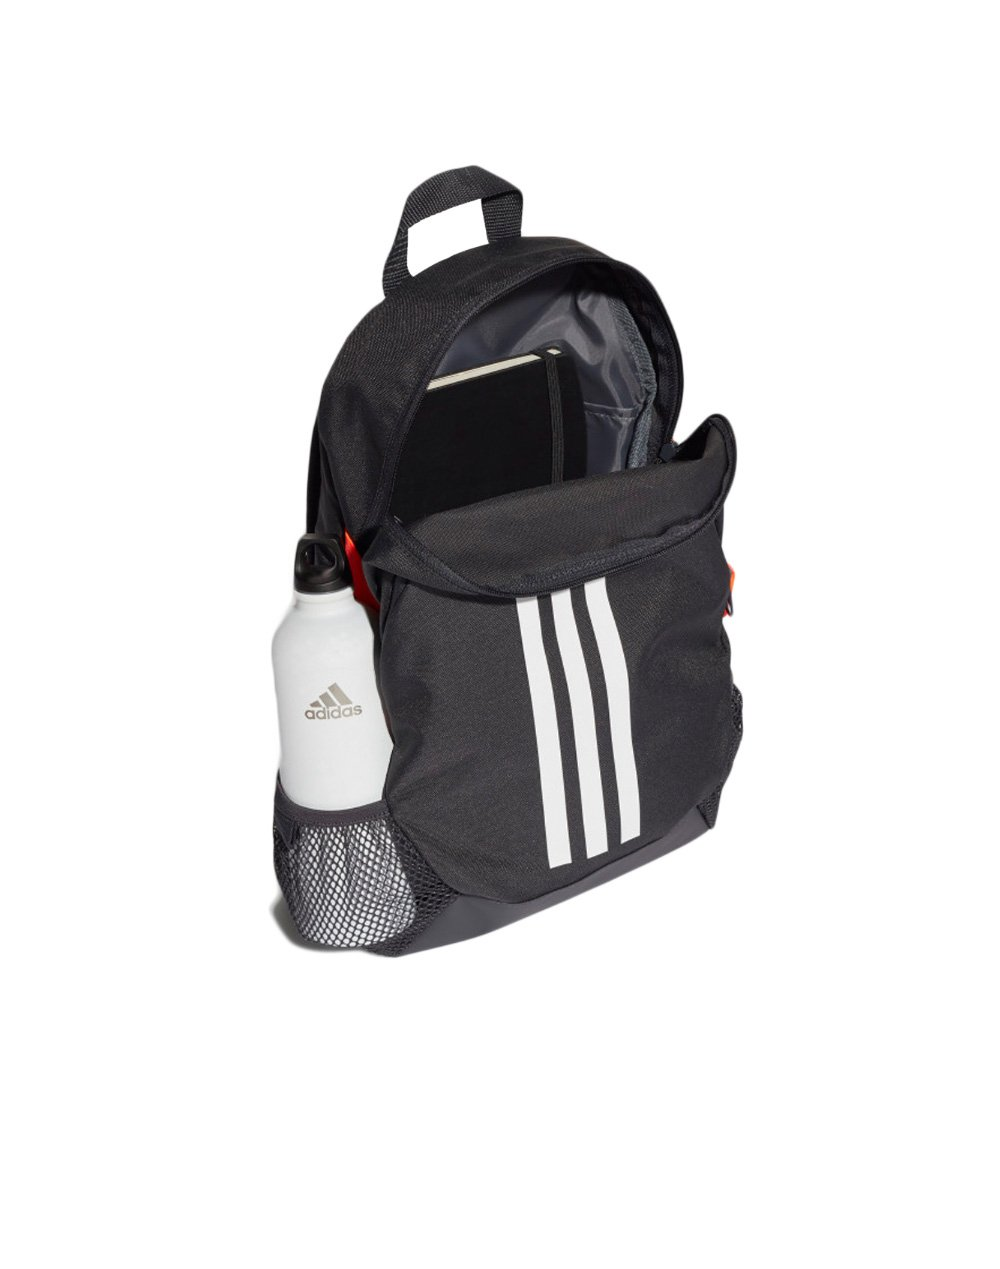 Adidas Power 5 Small Backpack (H48397) Carbon/White/Vista Grey/App Solar Red